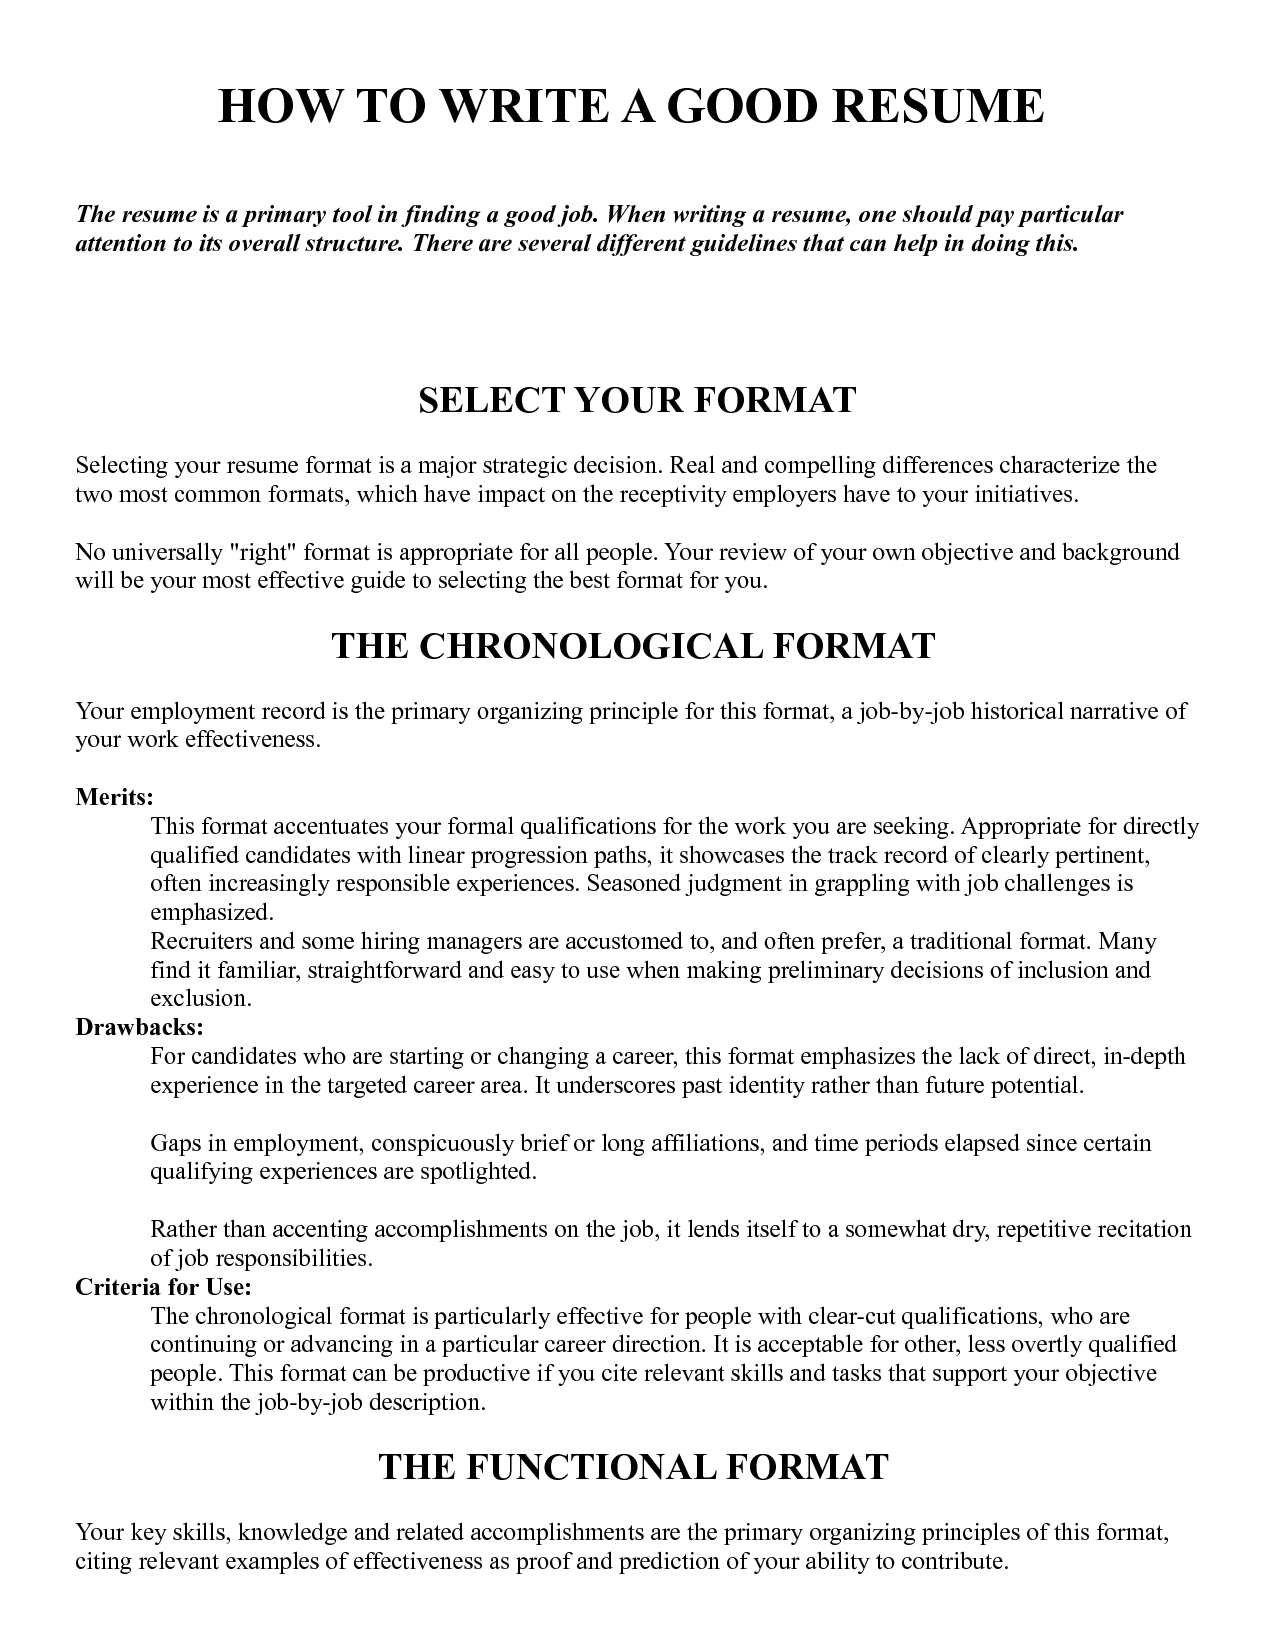 Examples of how to write a resume